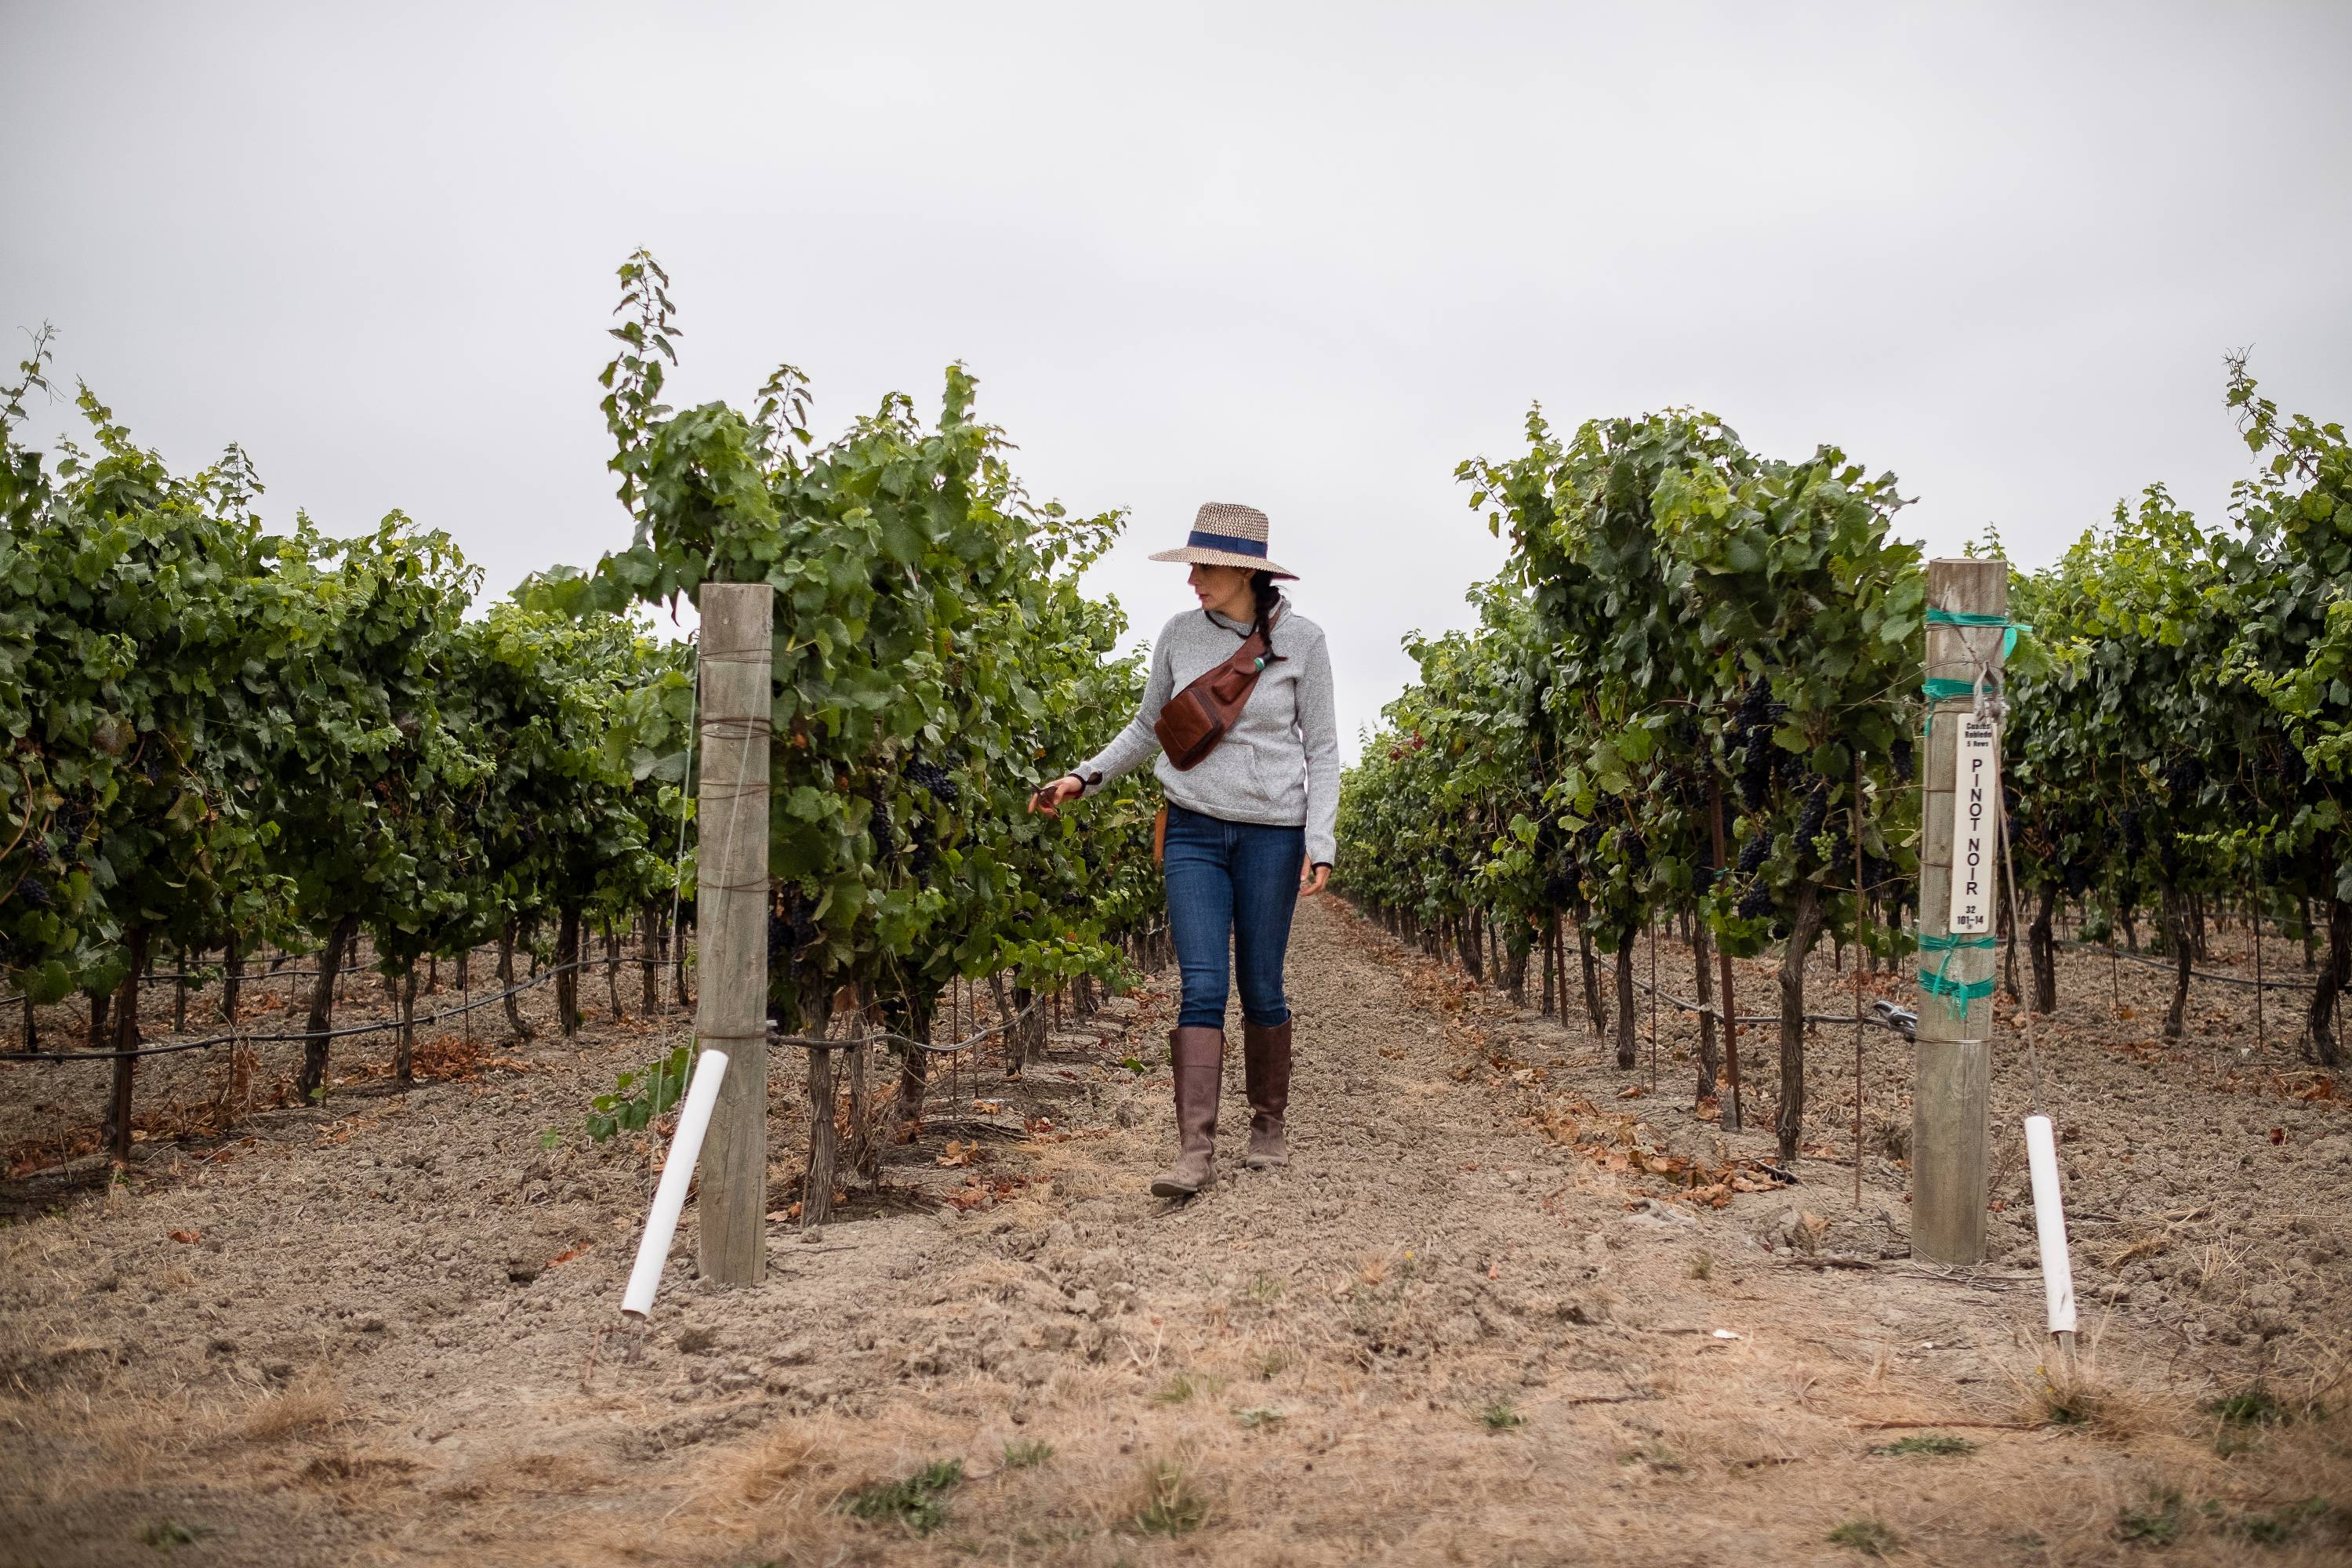 A new PBS documentary goes behind the scenes of Northern California's wine industry to show the influence and involvement of Latinos at all levels of the winery business.